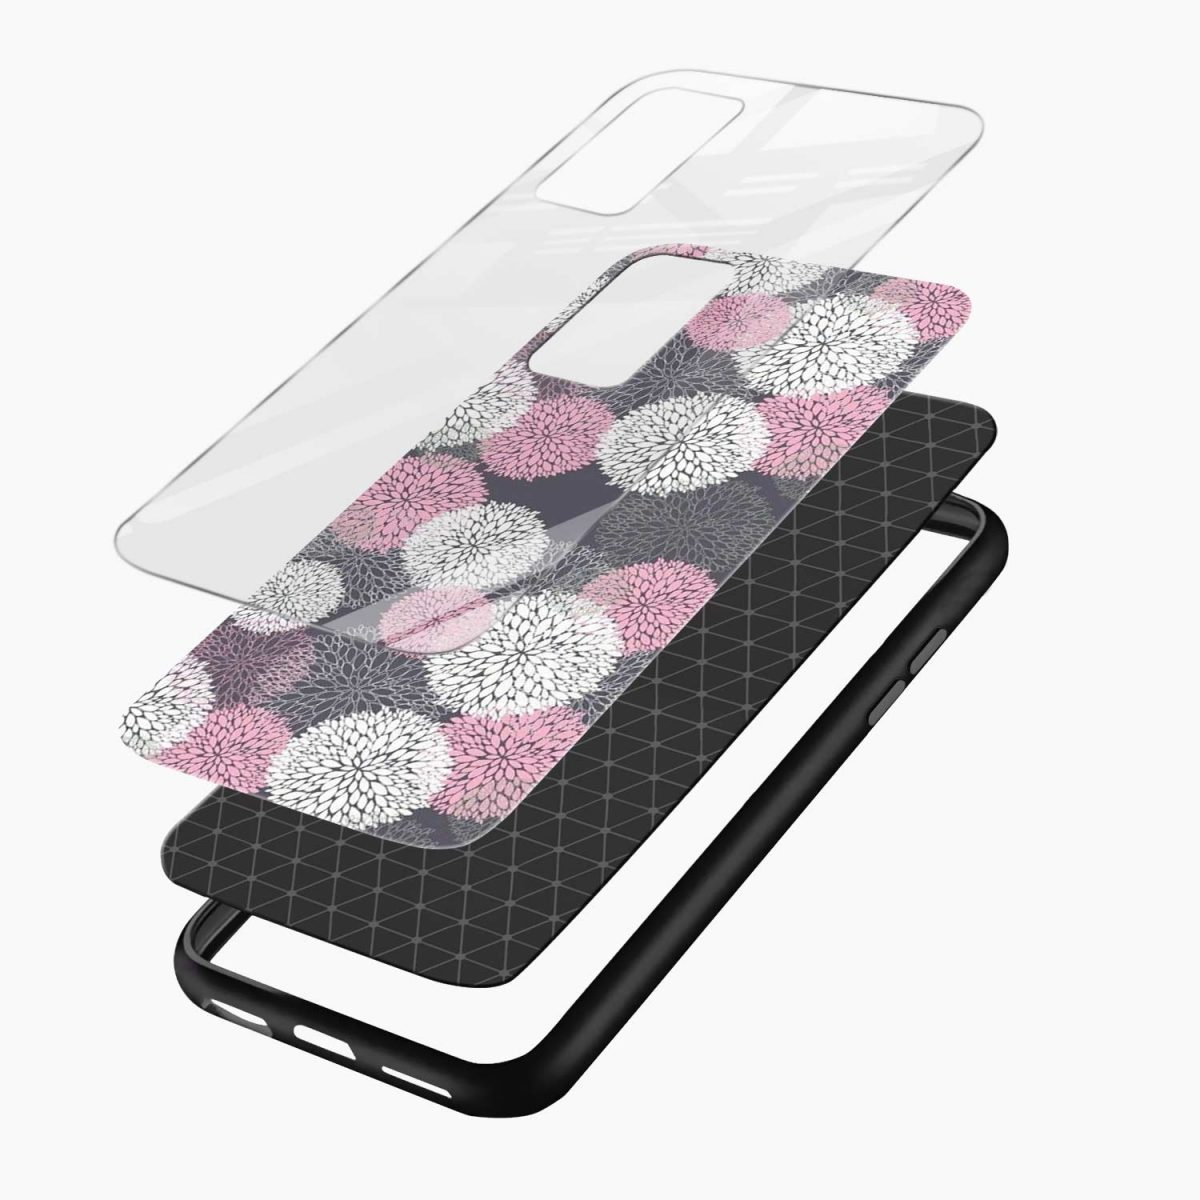 pink white flower pattern xiaomi mi 10t pro back cover layers view